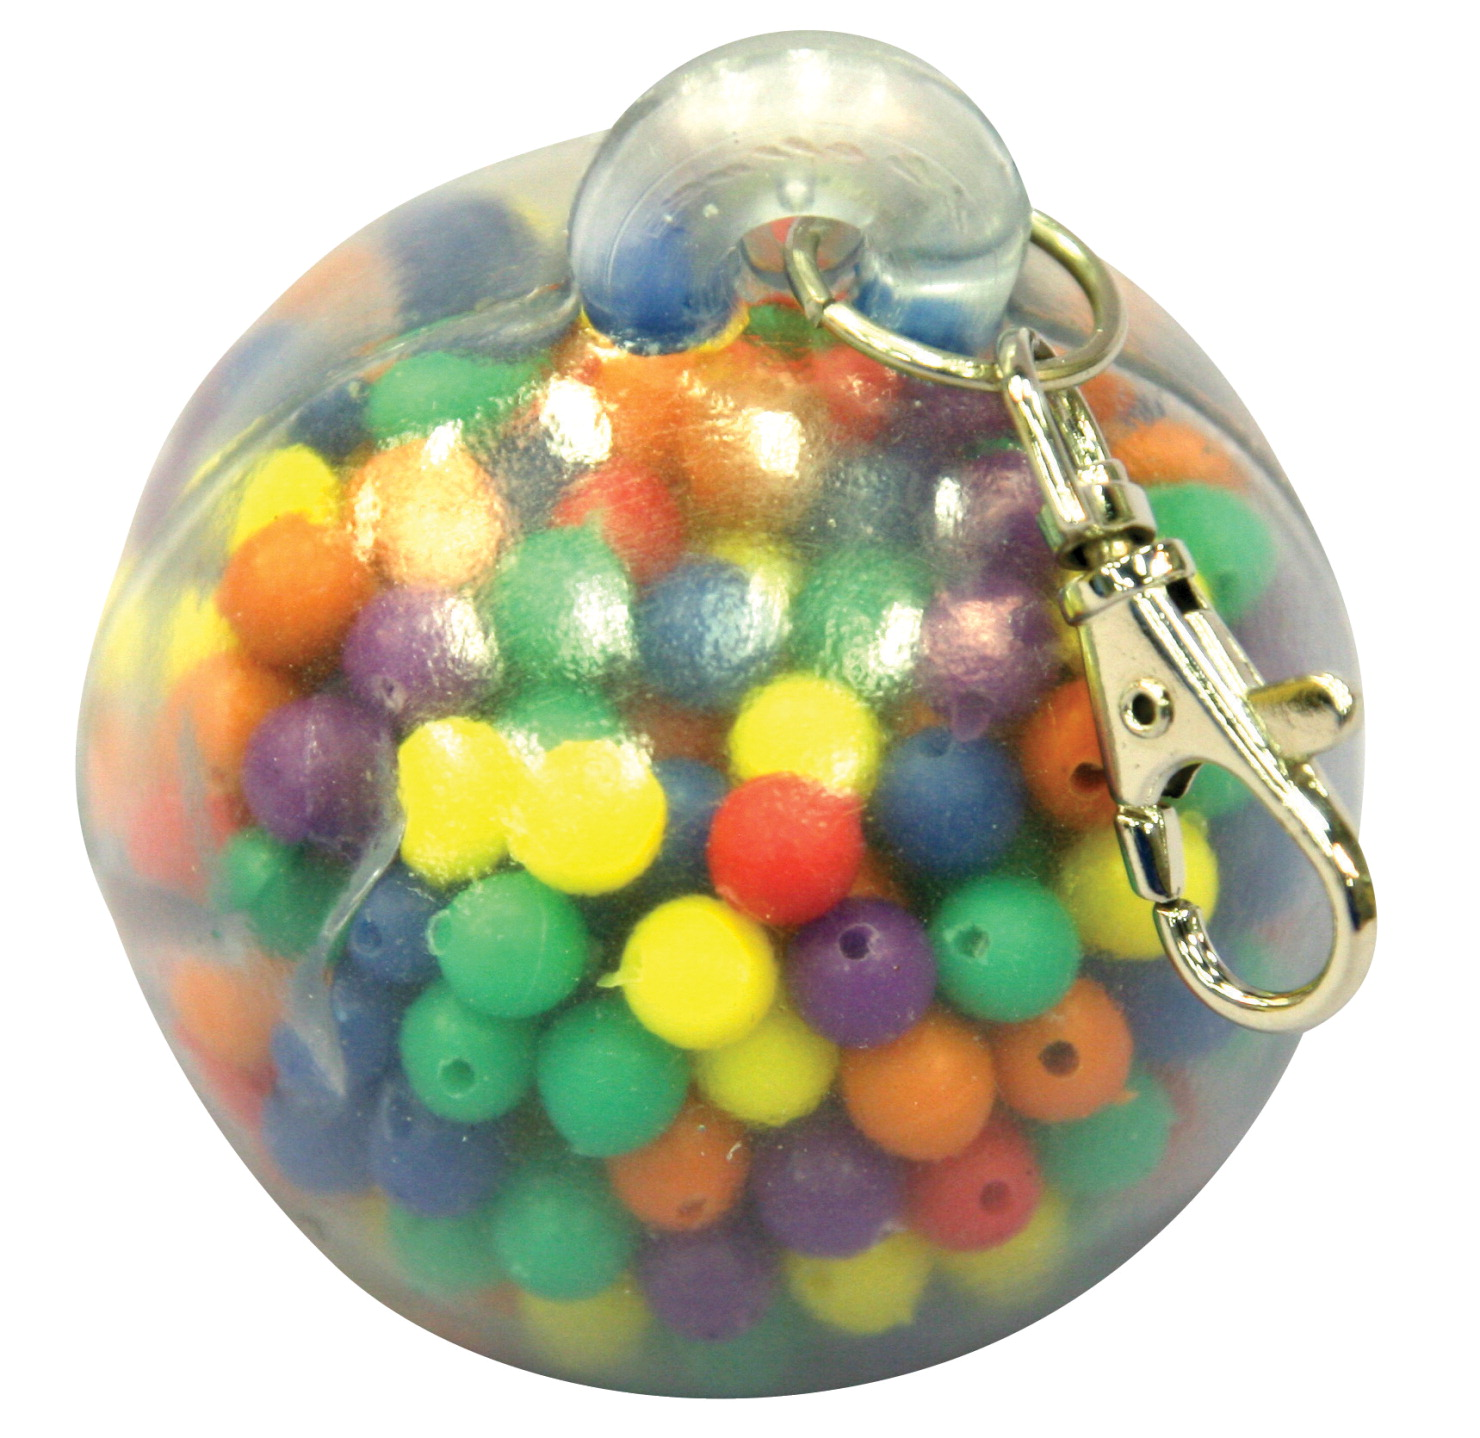 Abilitations Rainbow Fidget Ball